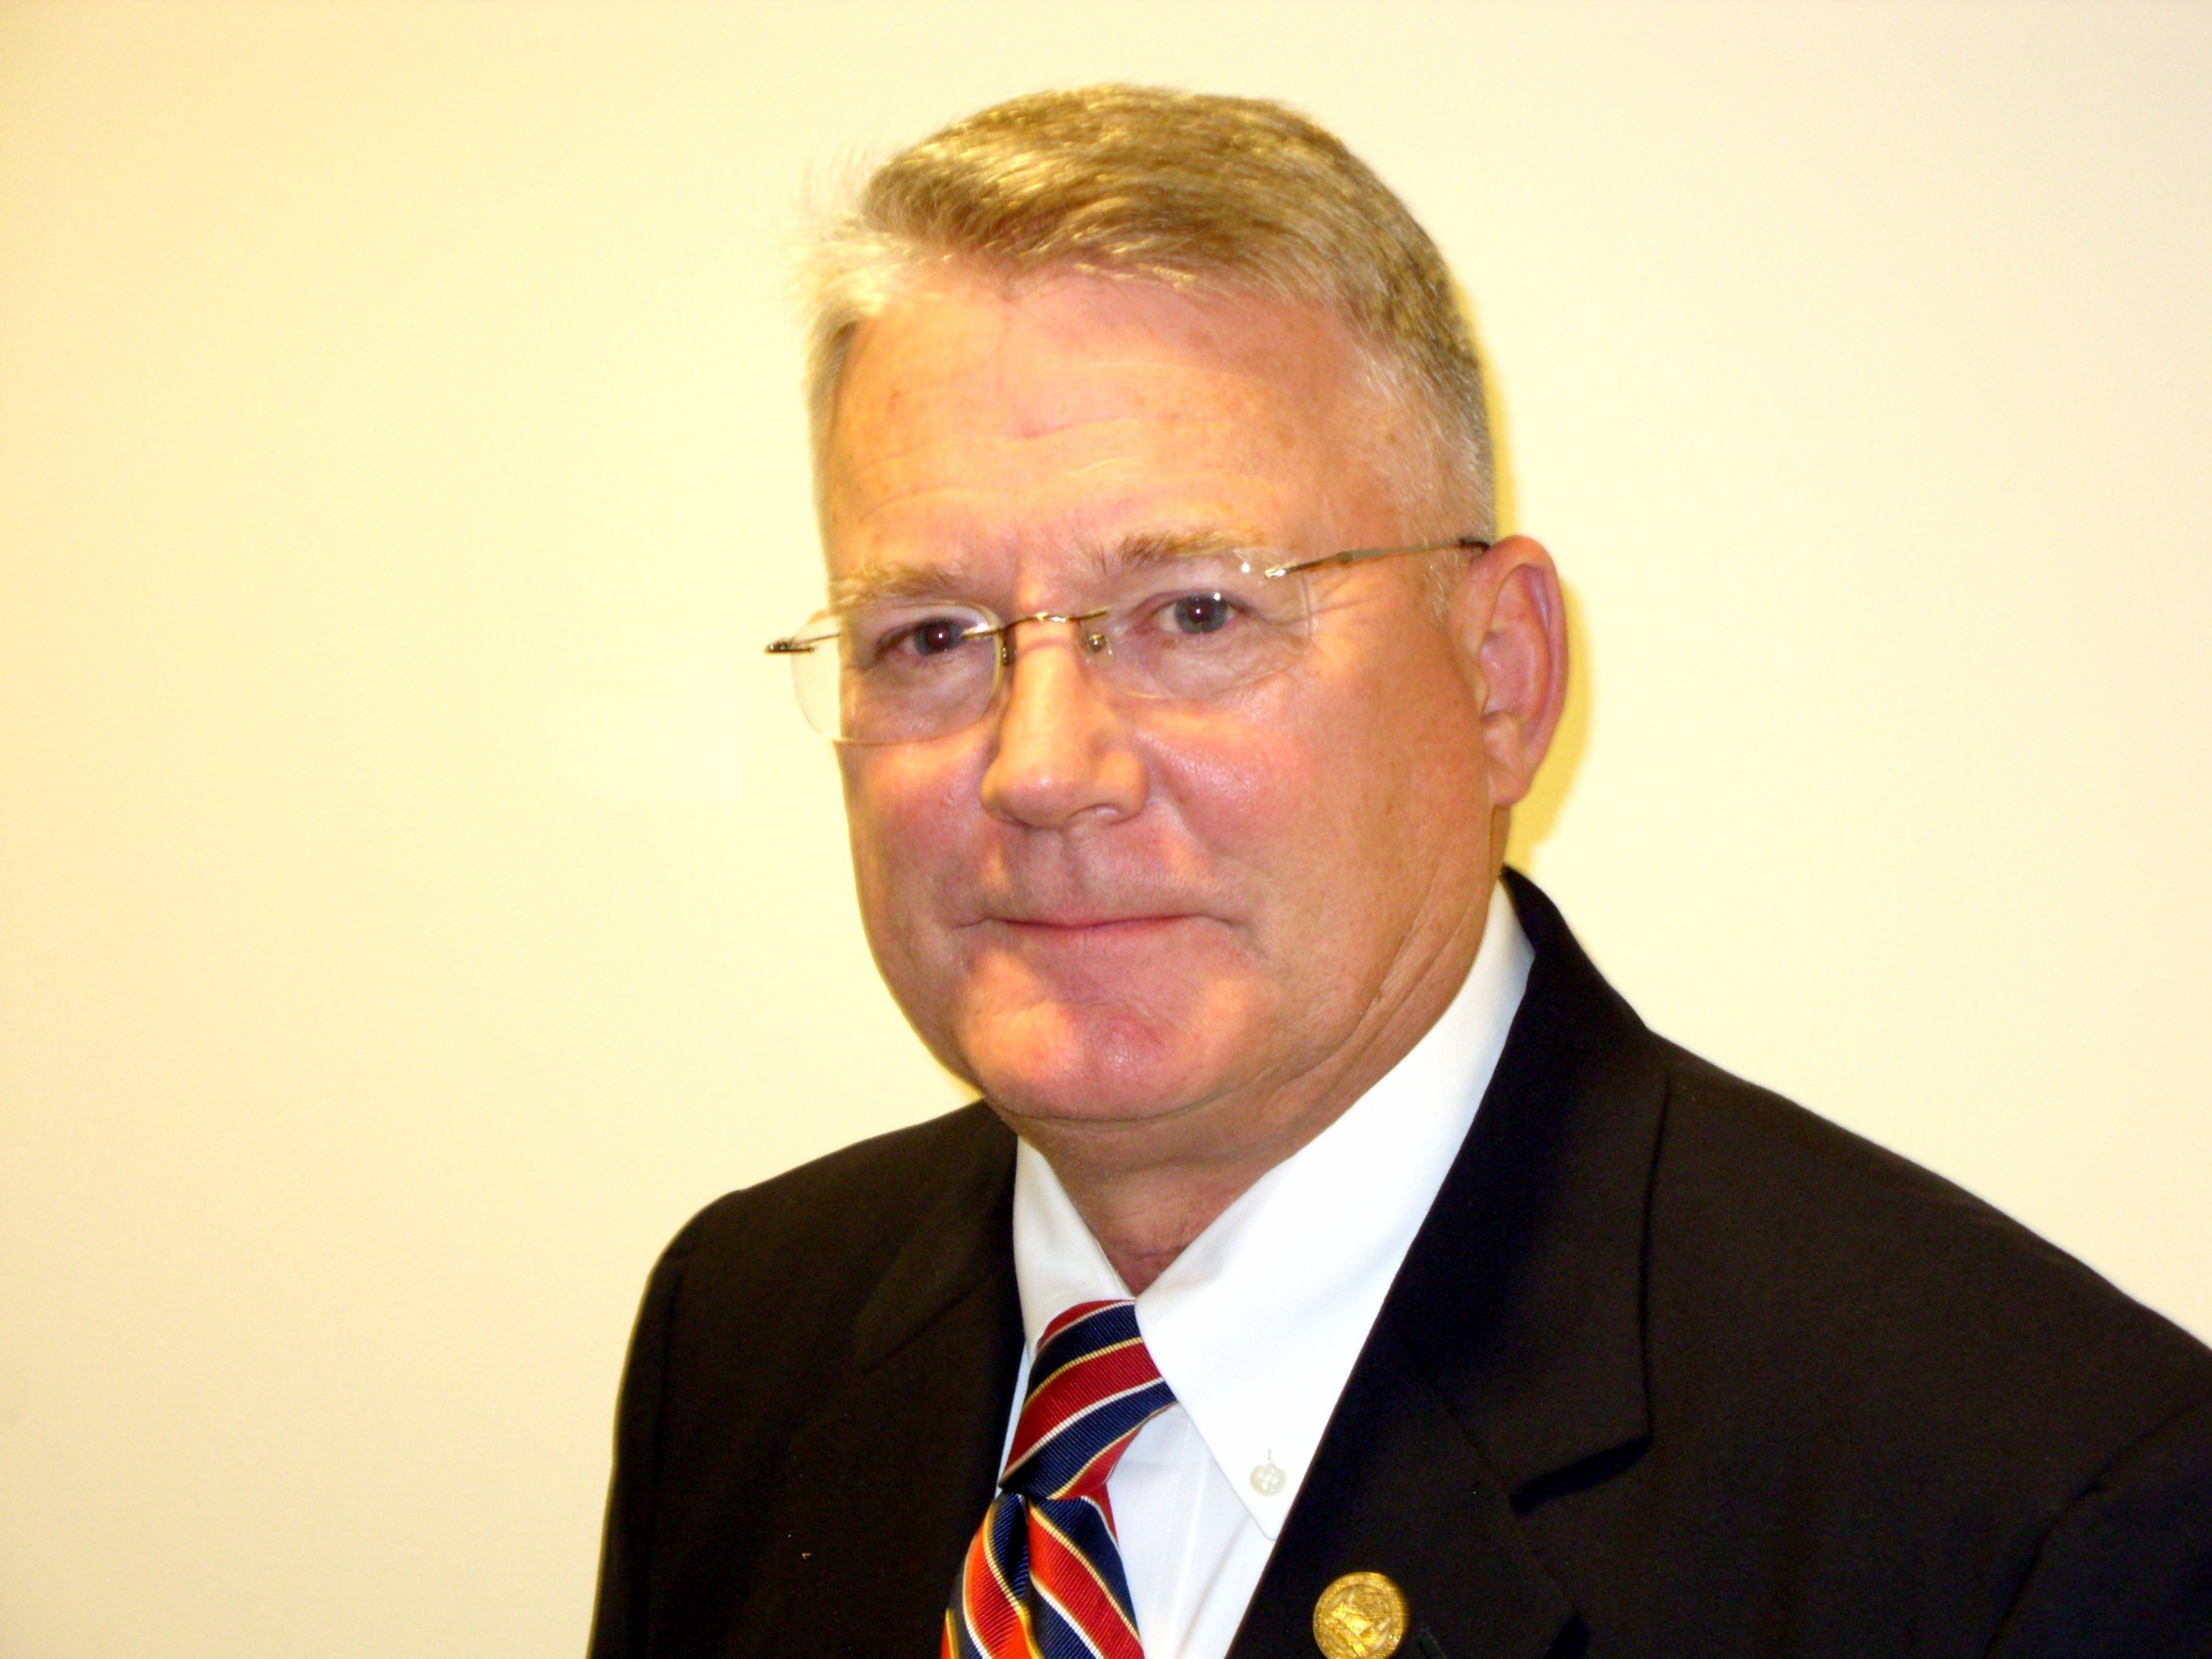 Staff photo of Mayor Pro Tem Mac Morrow